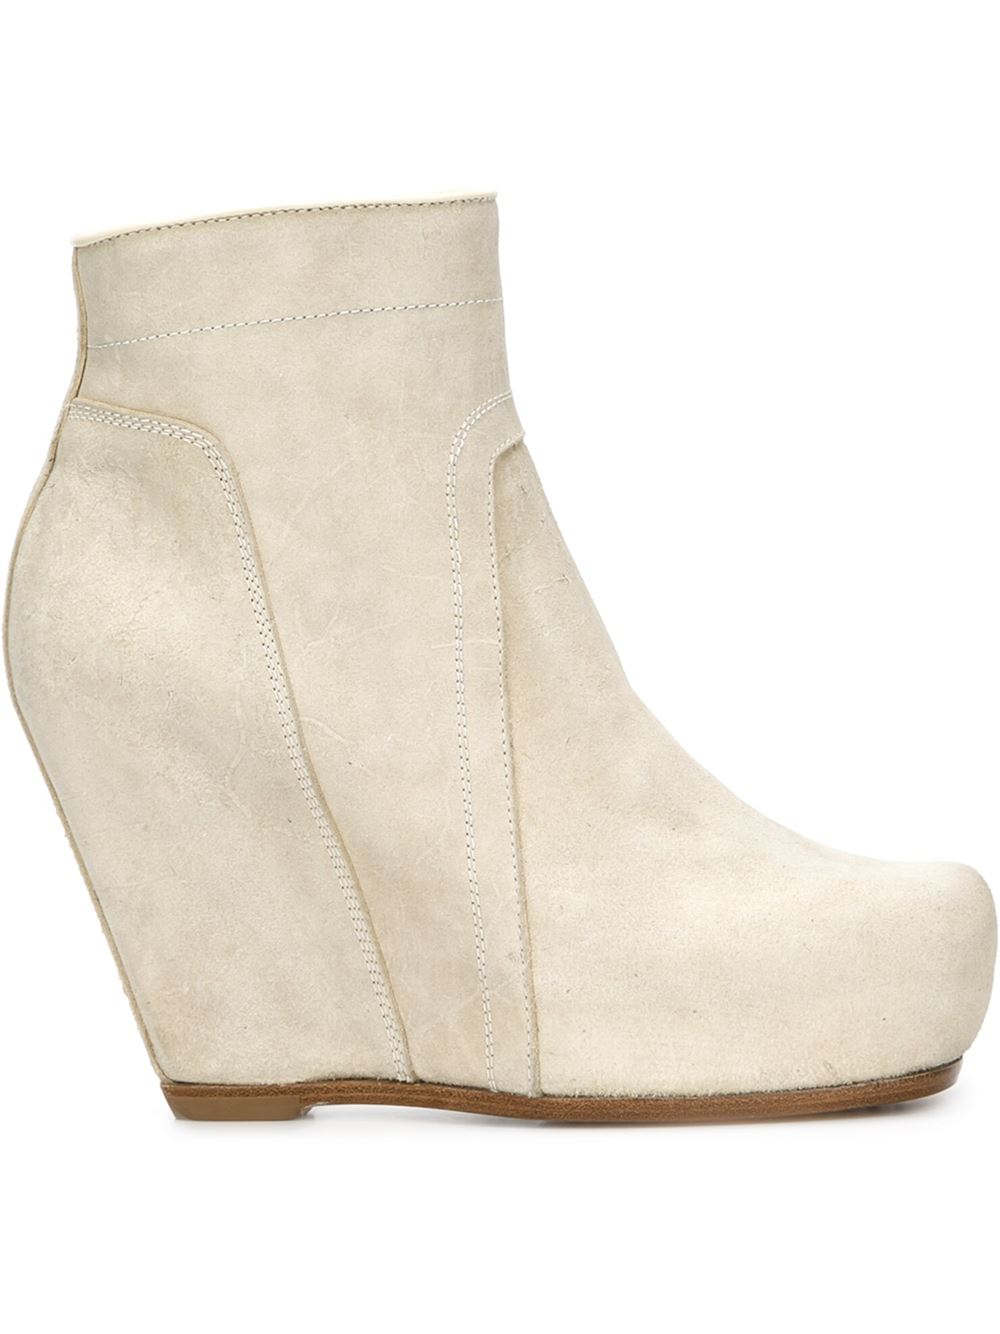 White Wedge Ankle Boots - Boot Hto